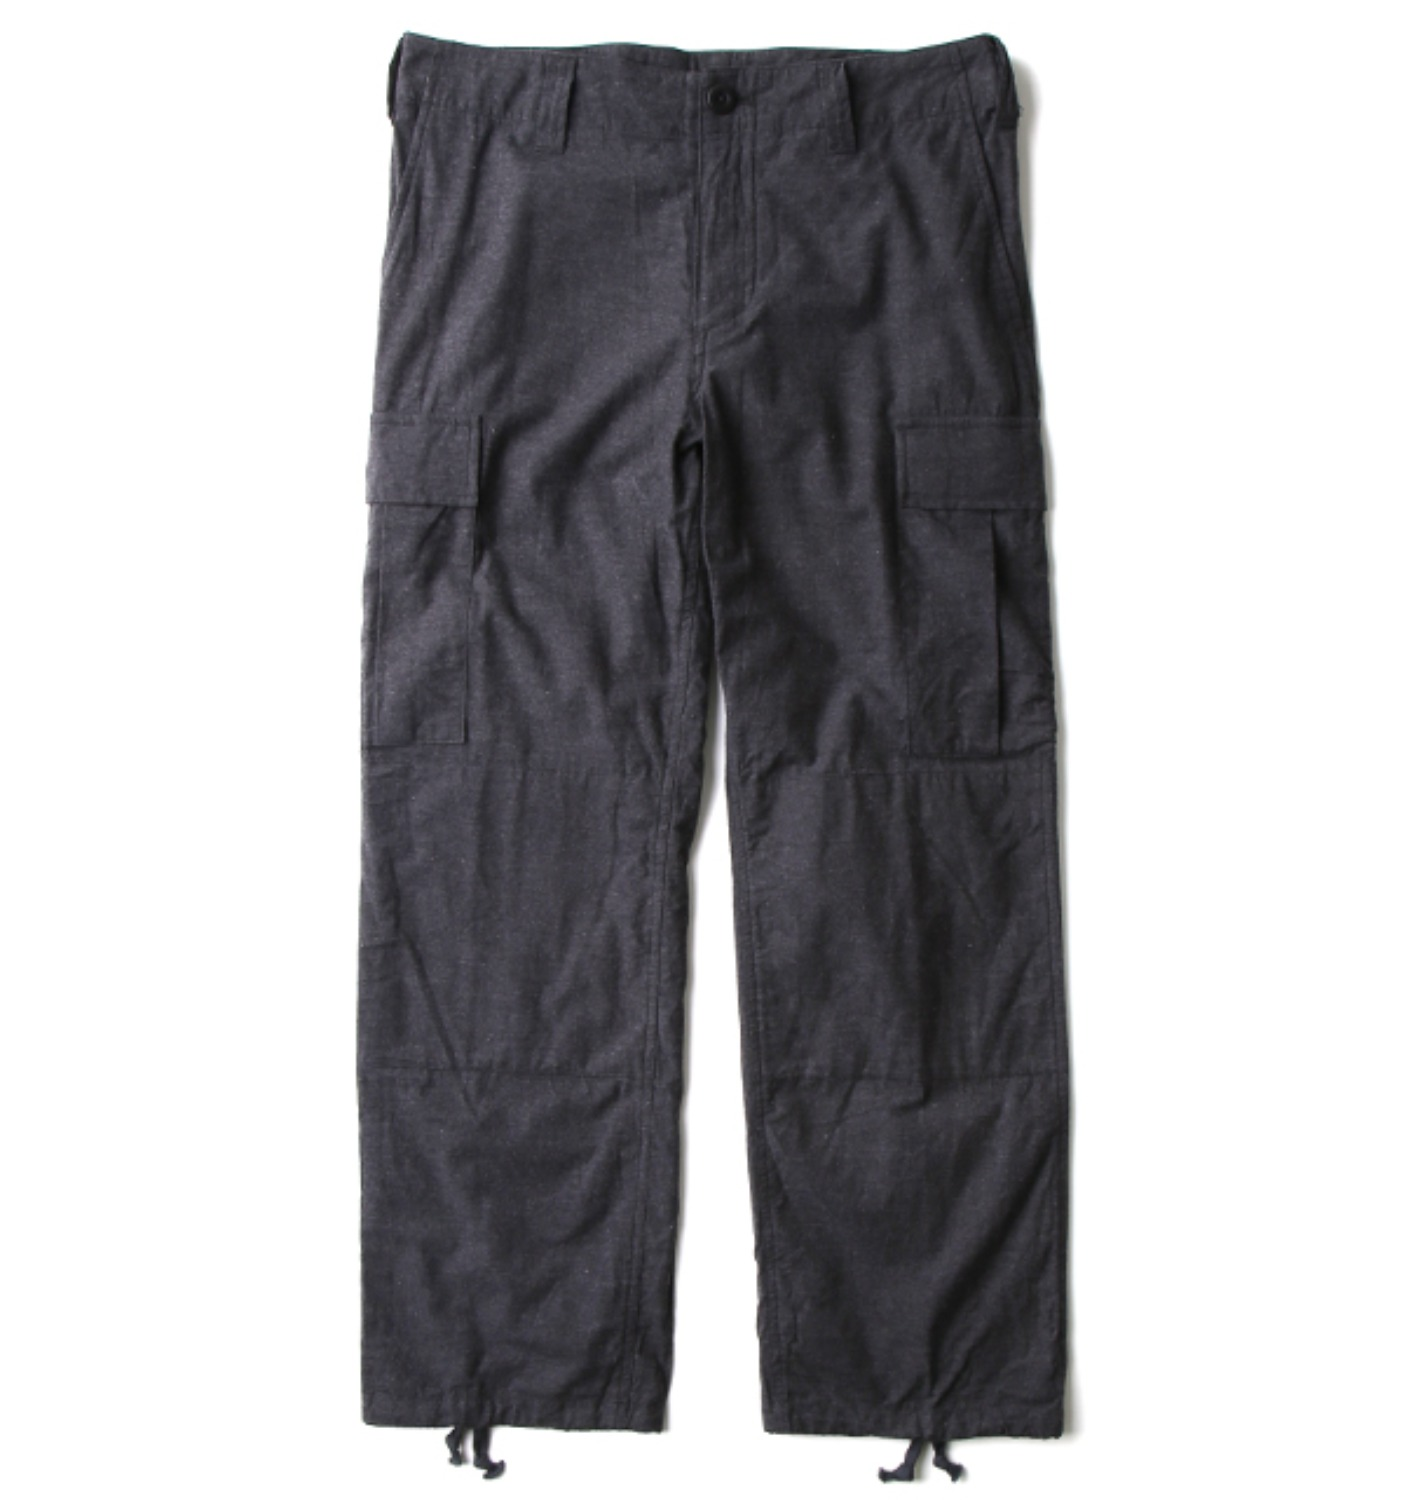 6 POCKET CARGO PANTS CHARCOAL(TT37AP03)